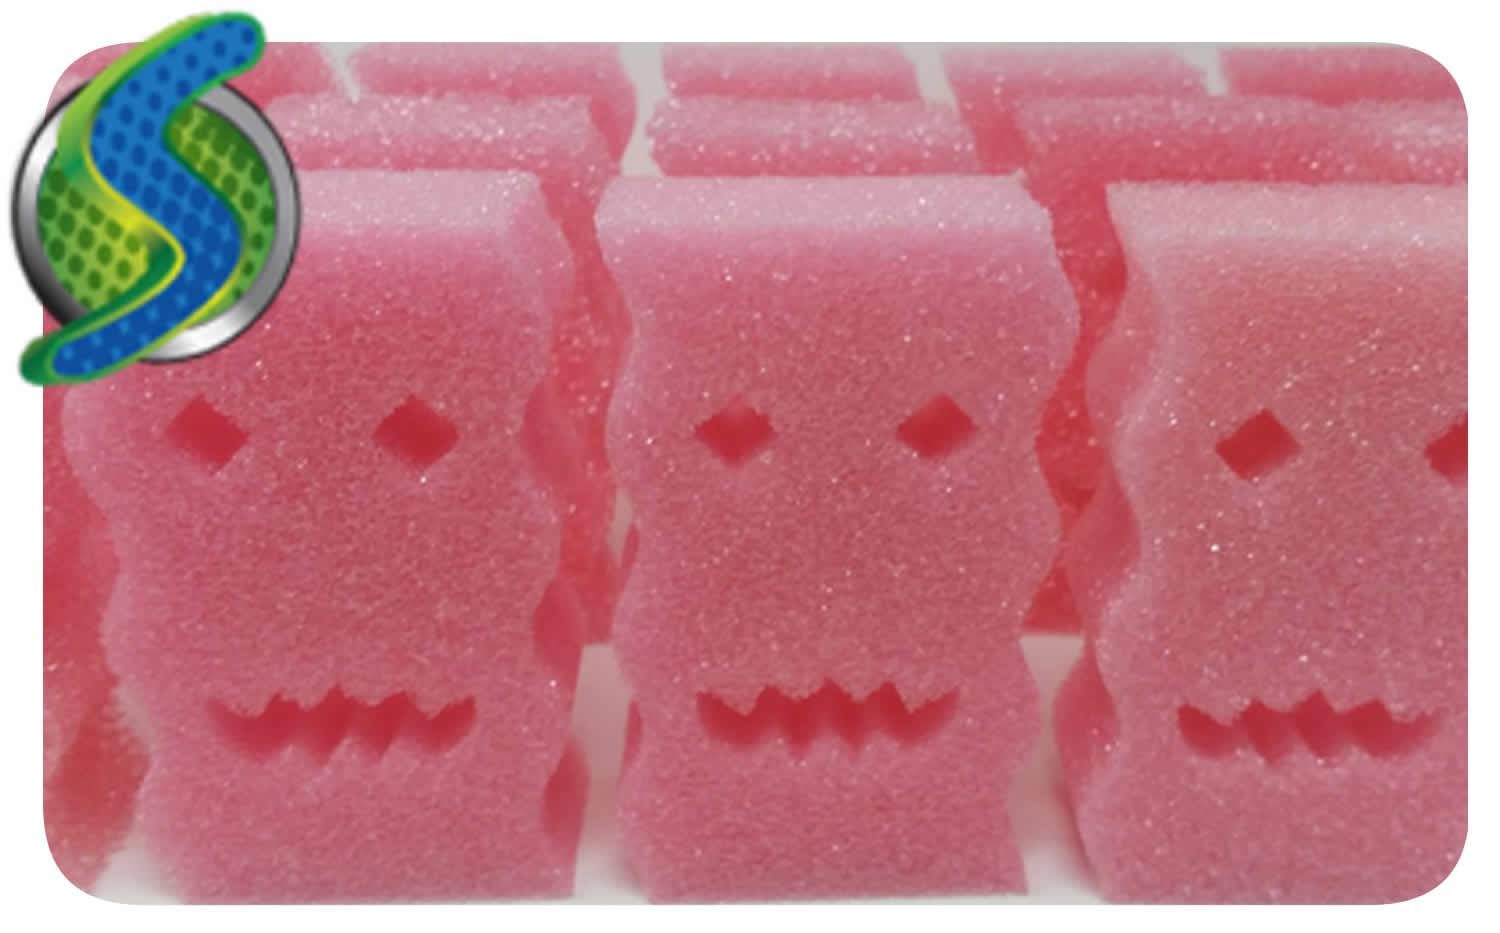 30 Pack Sponges - Stronger and Larger Than Scrub Daddy and Rinses Clean! Soft in Hot Water and Hard in Cold Water! Amazing Sponges Will Not Scratch Any Surface! Next Generation Sponges Made in USA!